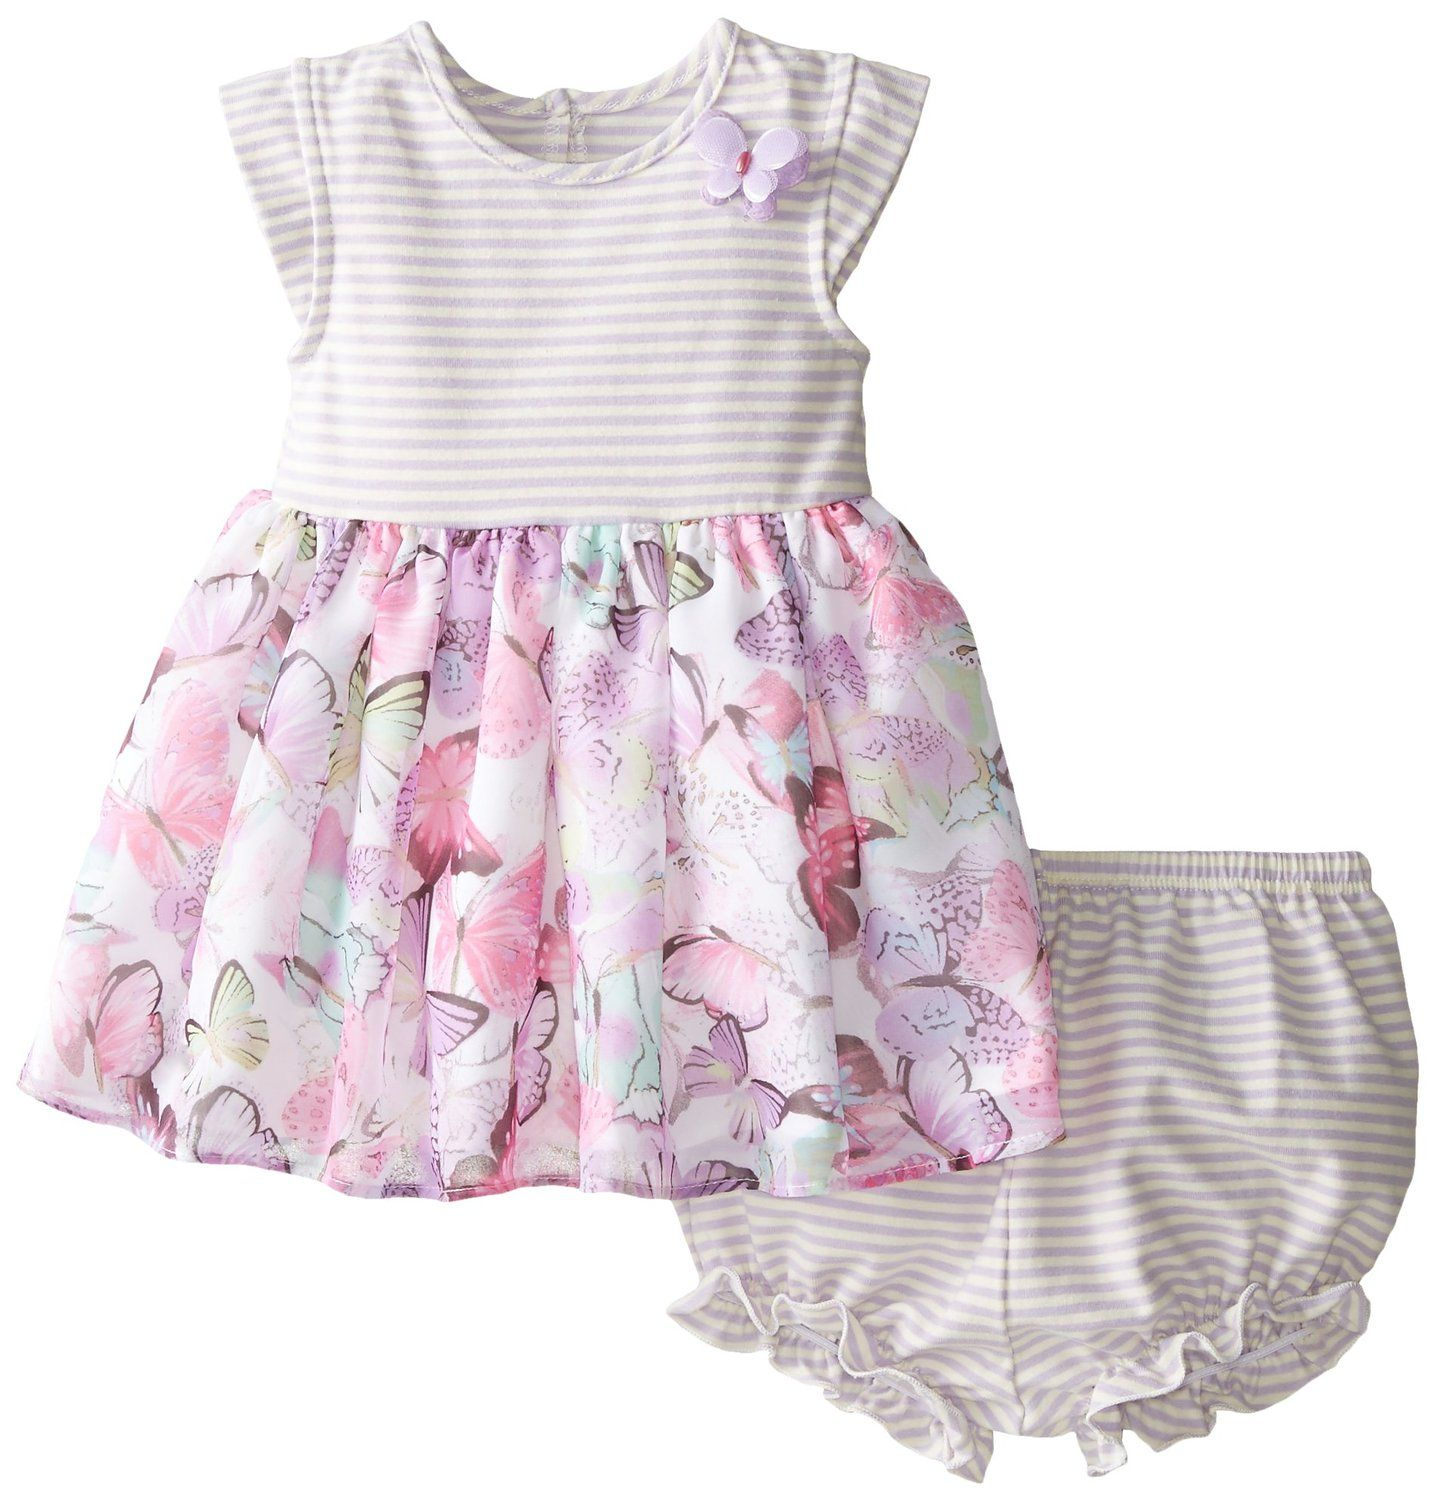 805b38af0a23 Amazon.com  Pippa   Julie Baby Girls  Butterfly Dress  Clothing ...